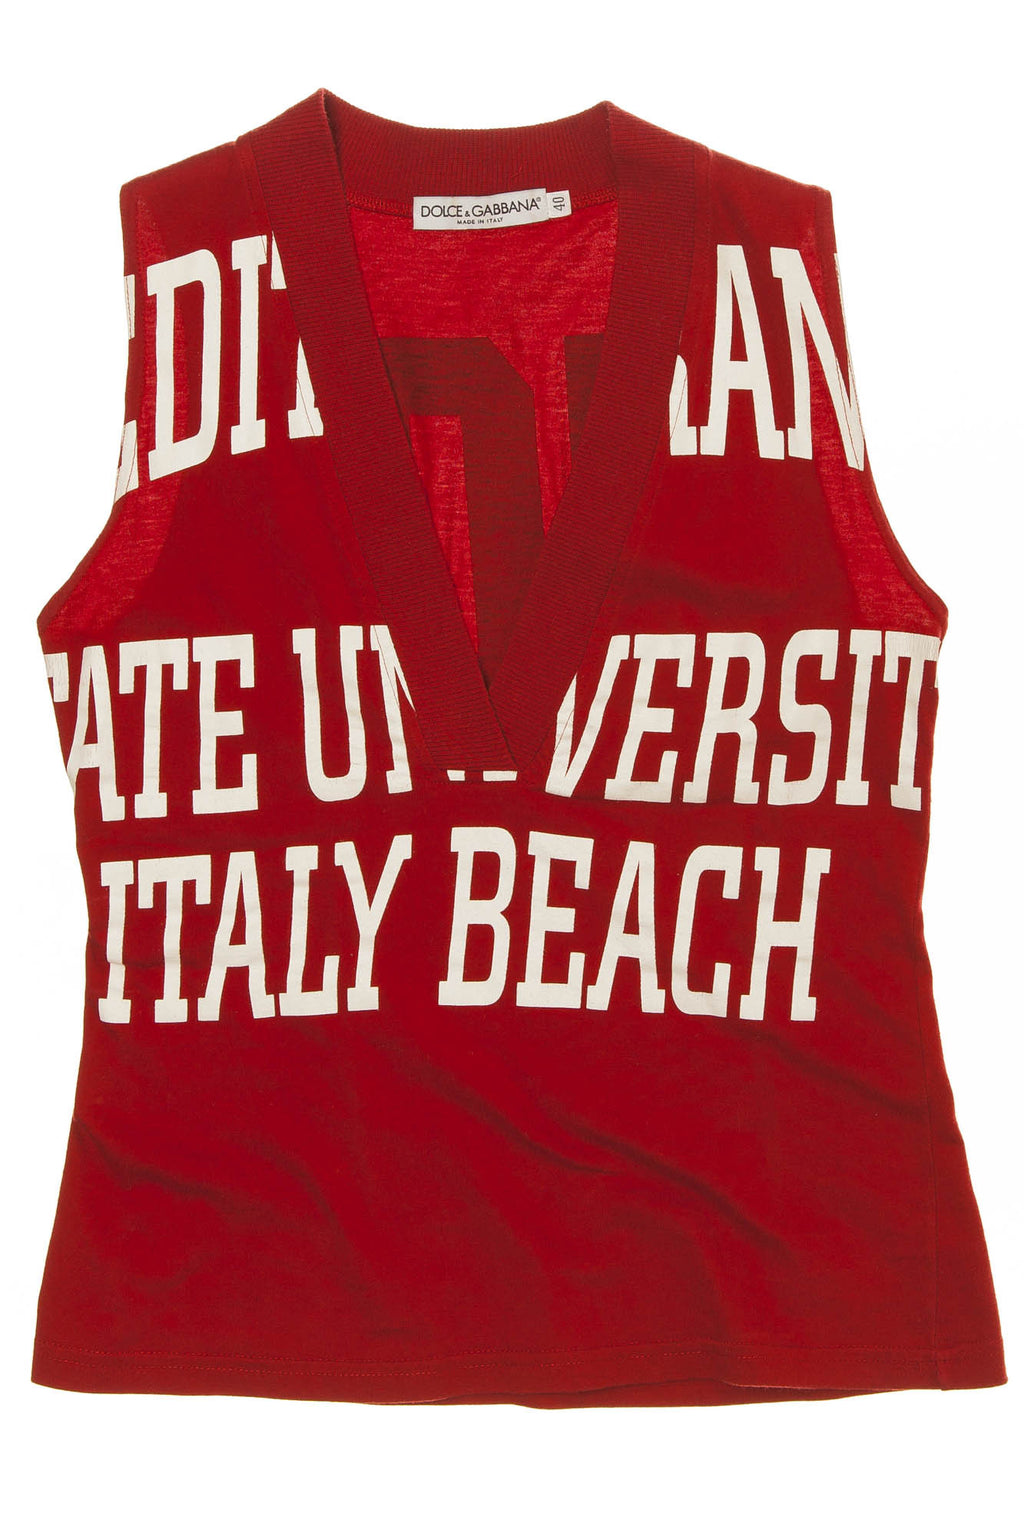 Dolce & Gabbana - Red Graphic V Neck Tank Top - IT 40